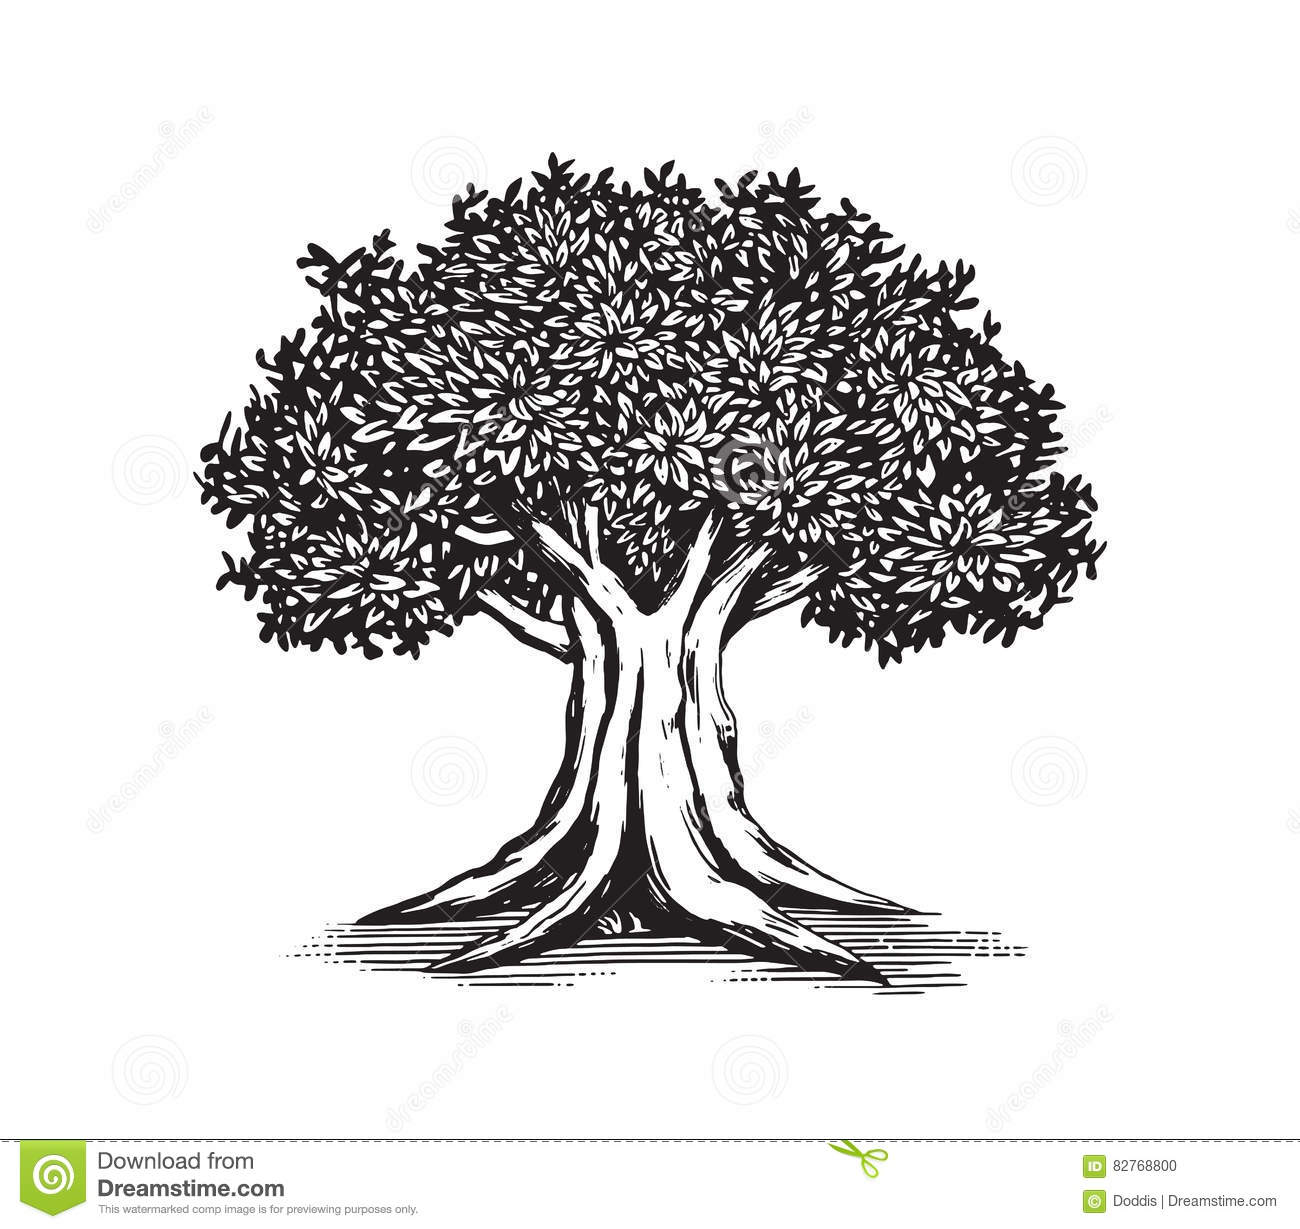 Tree Line Art Design : Oak tree drawing vector logo design illustration stock